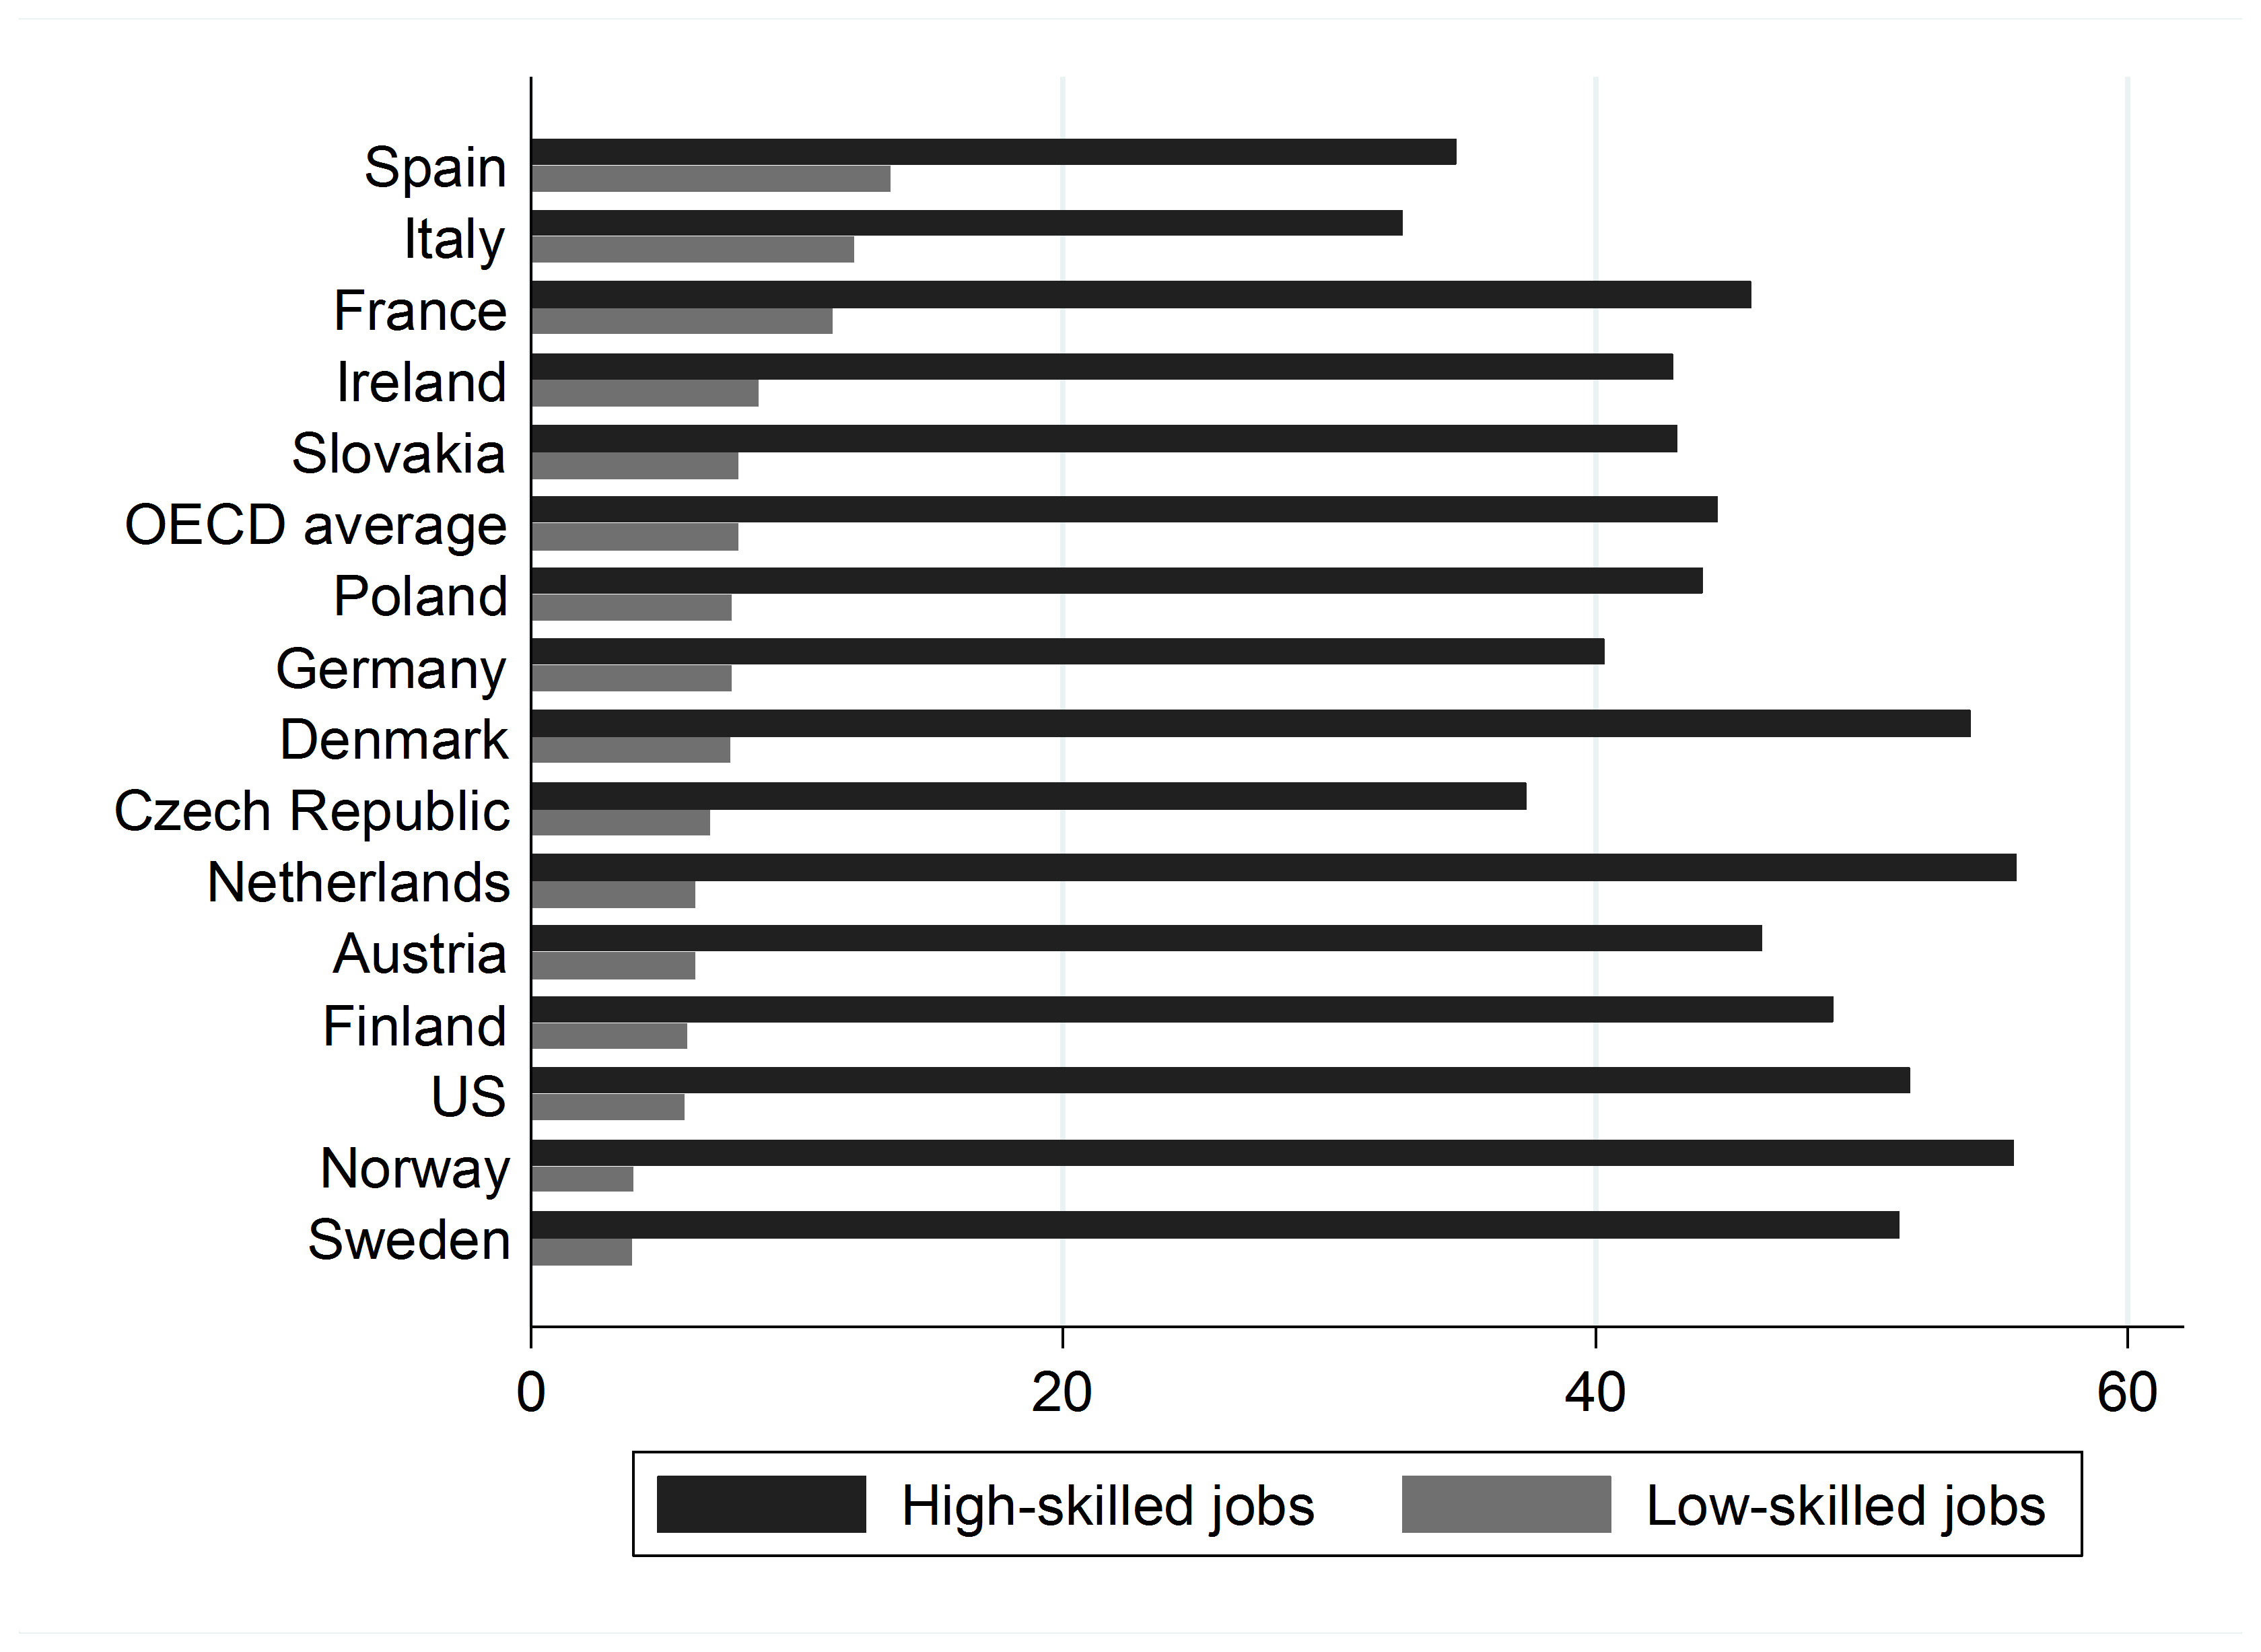 who is to blame for overeducation graduates employers or policy note percentages do not add up to 100% because only high and low skilled jobs are shown countries ordered in descending order by percentage of workers